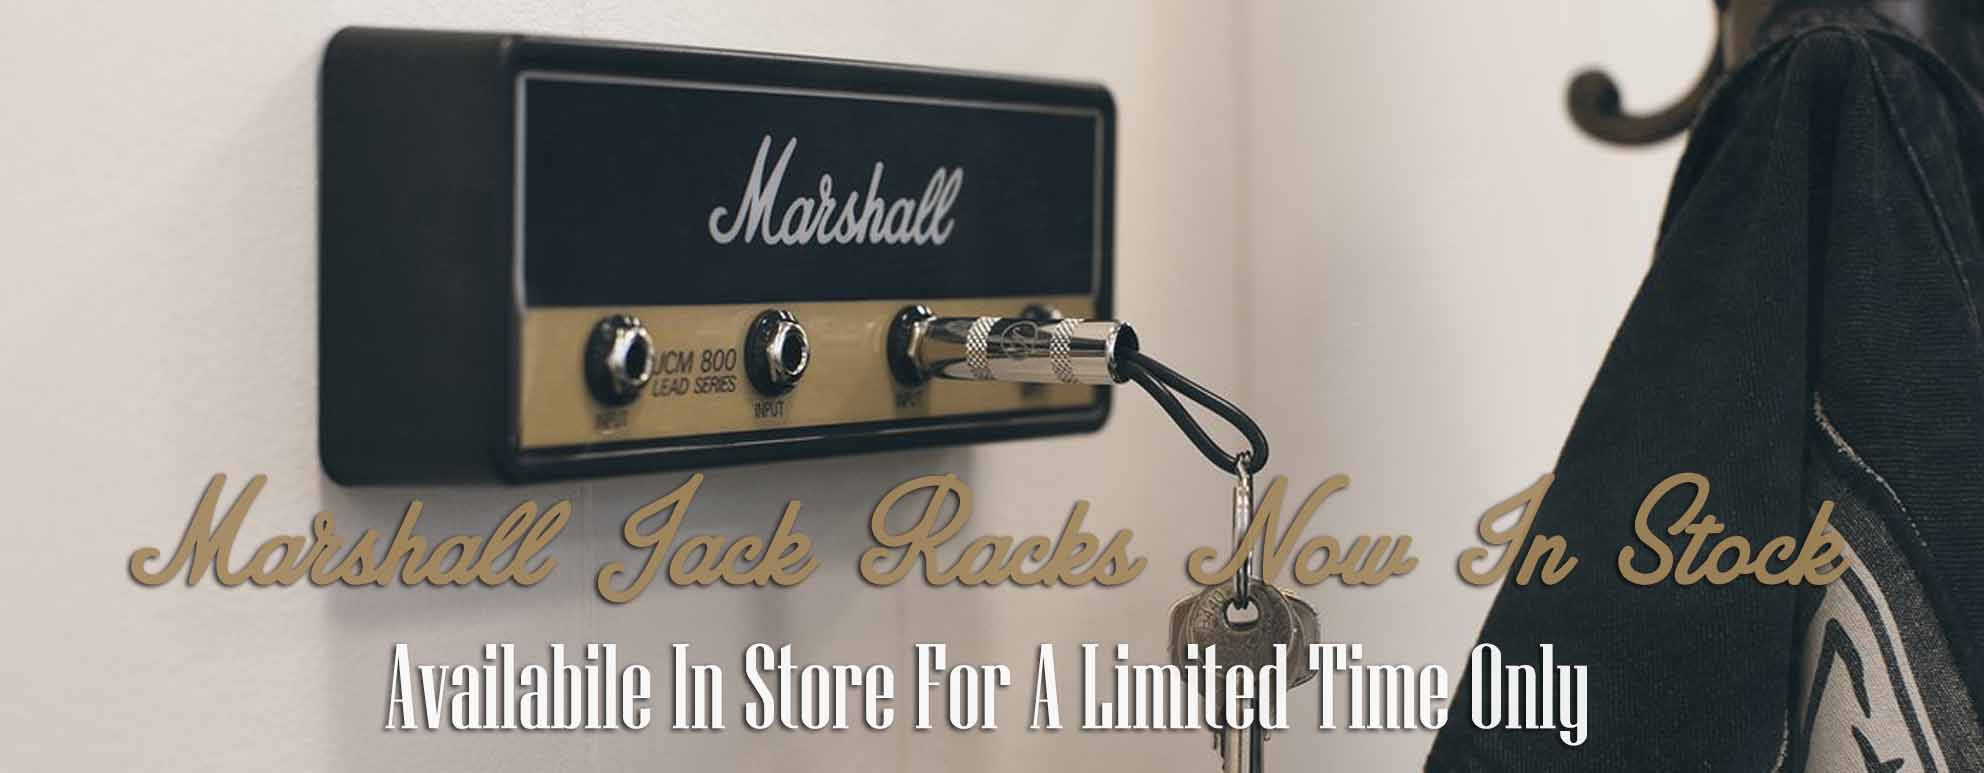 Marshall Jack Racks Now In Stock - In store for a limited time!